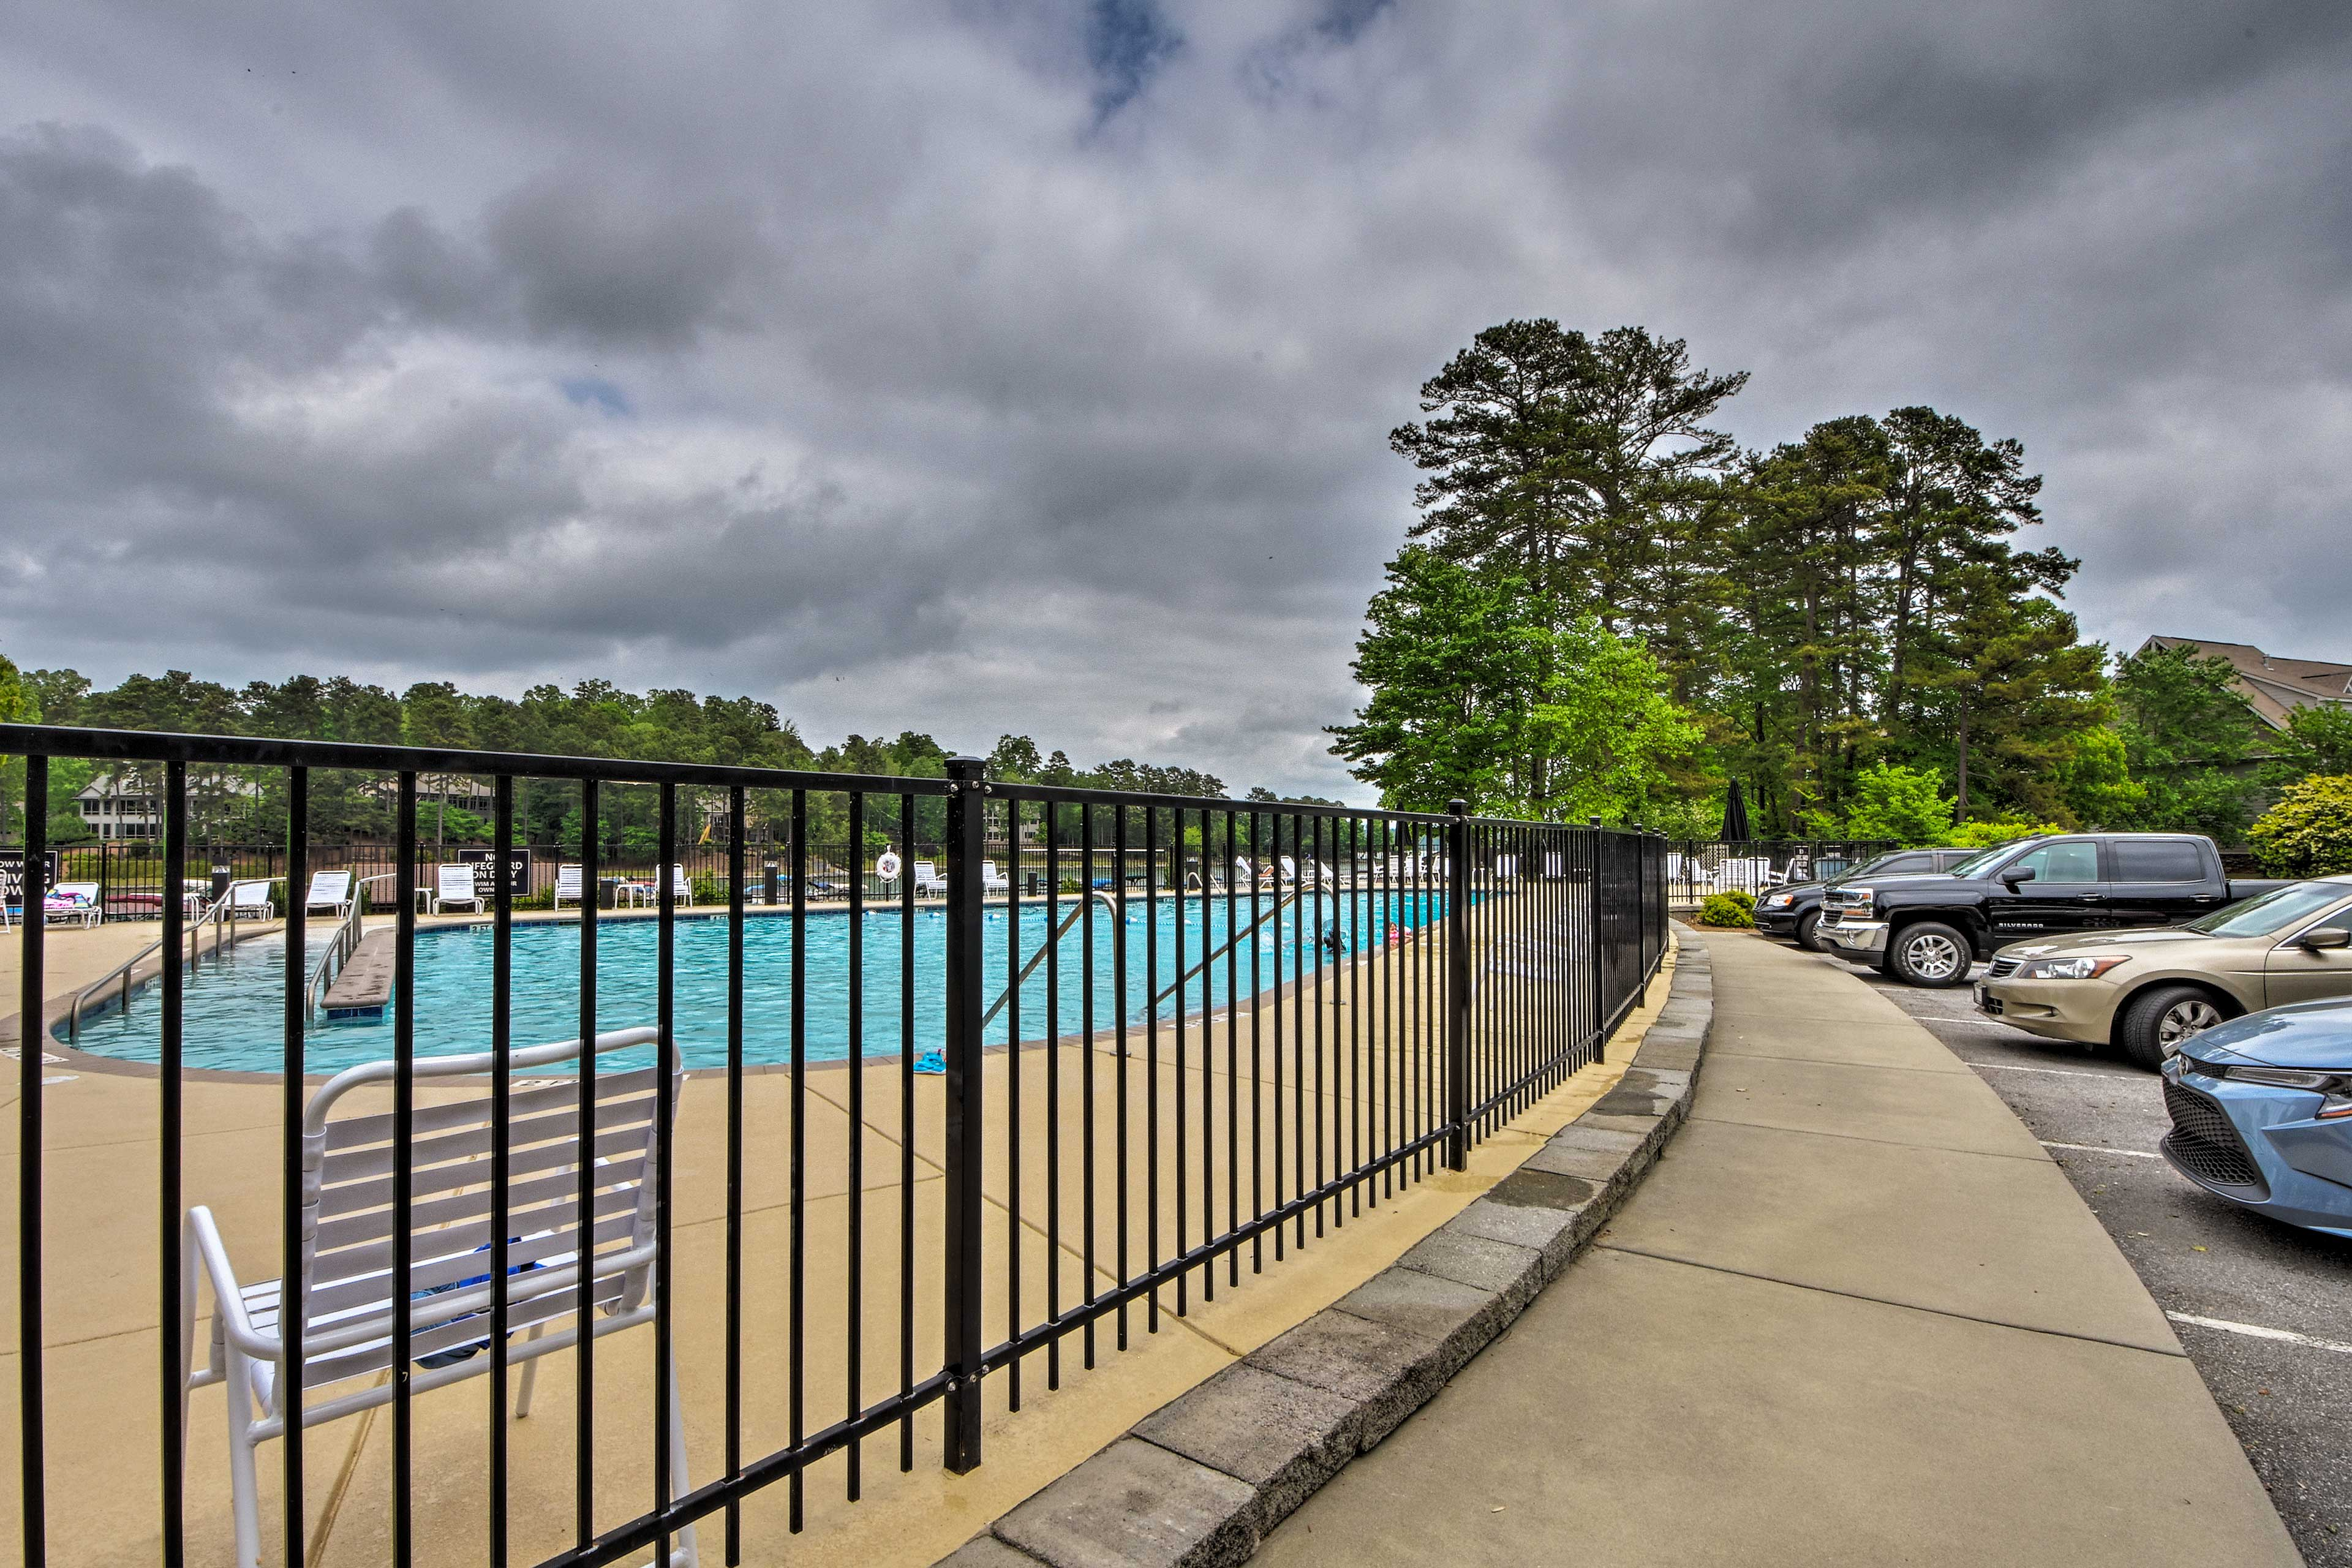 Make a splash or meet other travelers at the community pool.